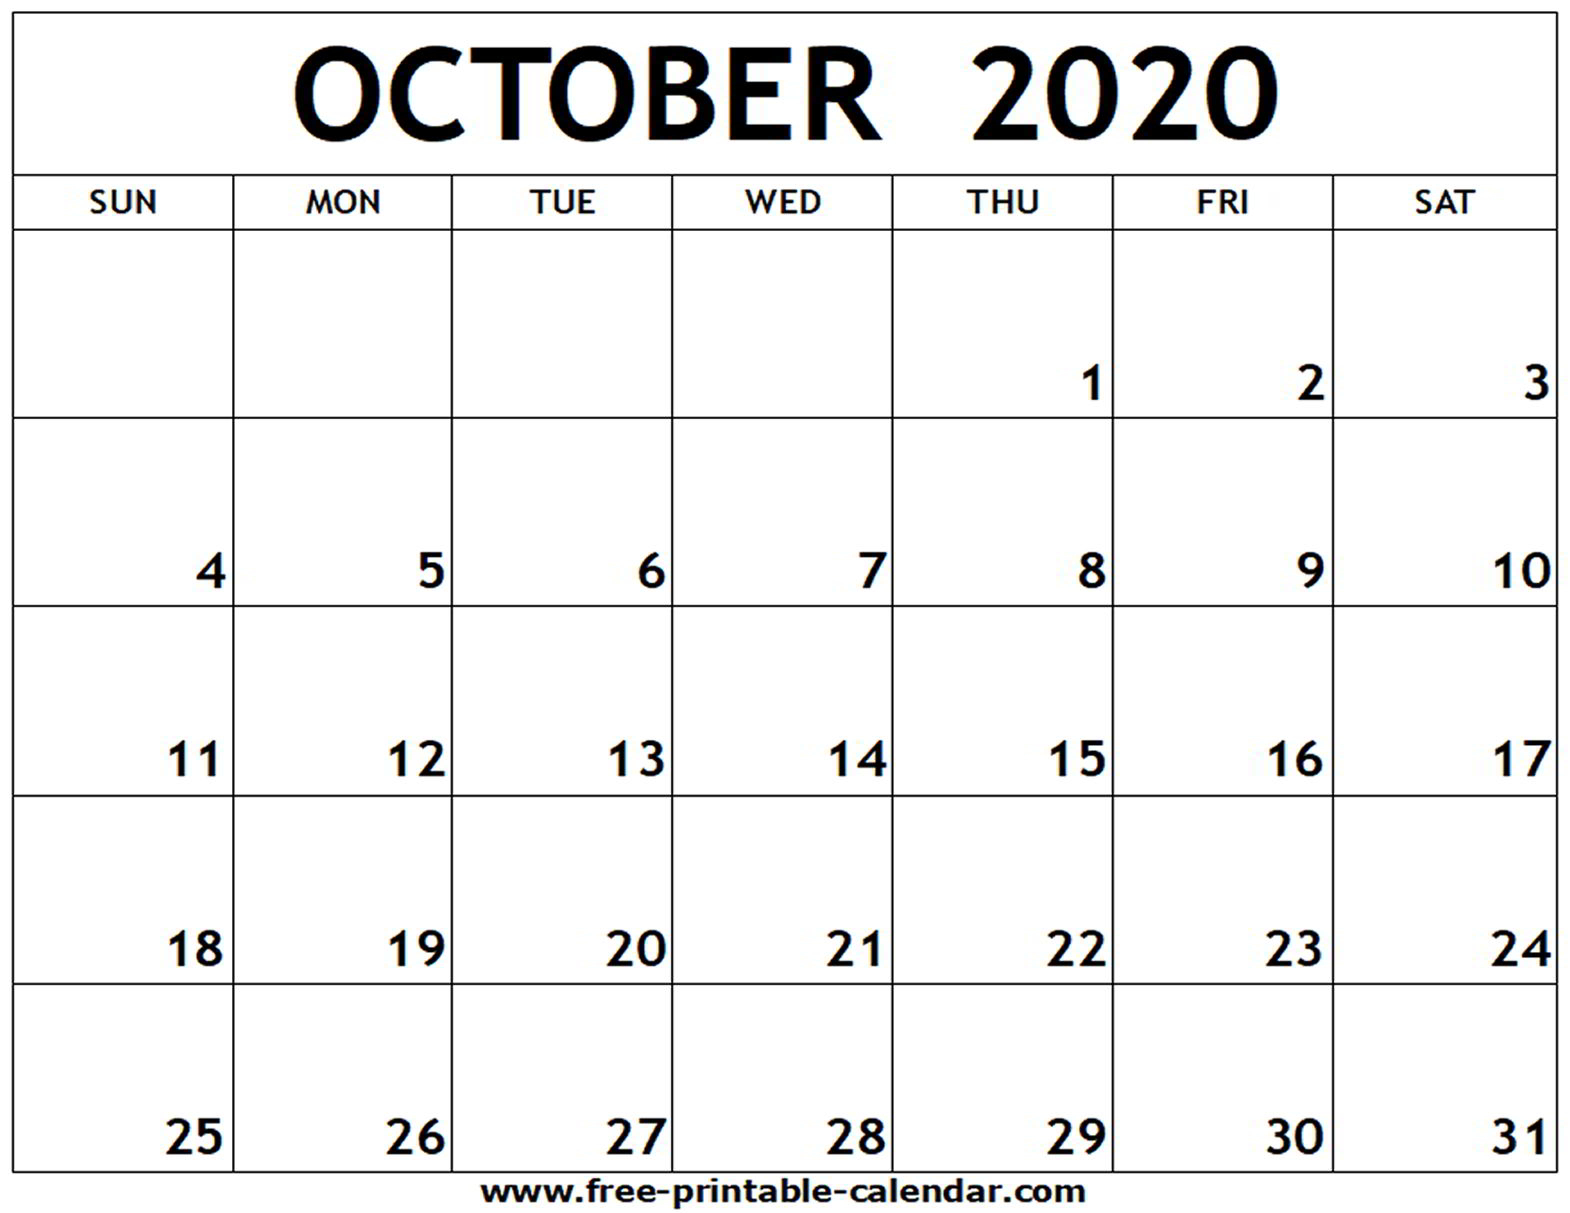 Calendar 2020 October - Tunu.redmini.co